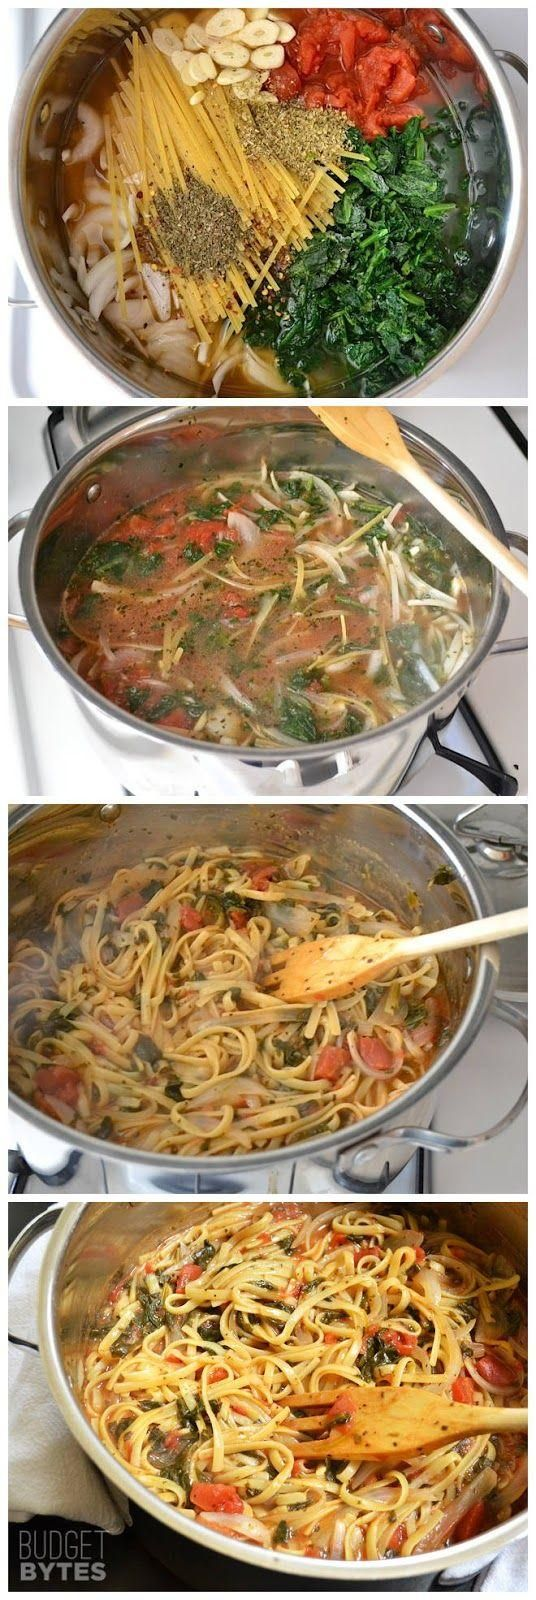 Without the oil - perfect sw free food!  Italian Wonderpot  4 cups vegetable broth,  2 Tbsp olive oil, 12 oz. fettuccine, 8 oz. frozen chopped spinach, 1 (28 oz.) can diced tomatoes, 1 medium onion, 4 cloves garlic, ½ Tbsp dried basil, ½ Tbsp dried oregano, ¼ tsp red pepper flakes, freshly cracked pepper to taste, 2 oz. feta cheese.